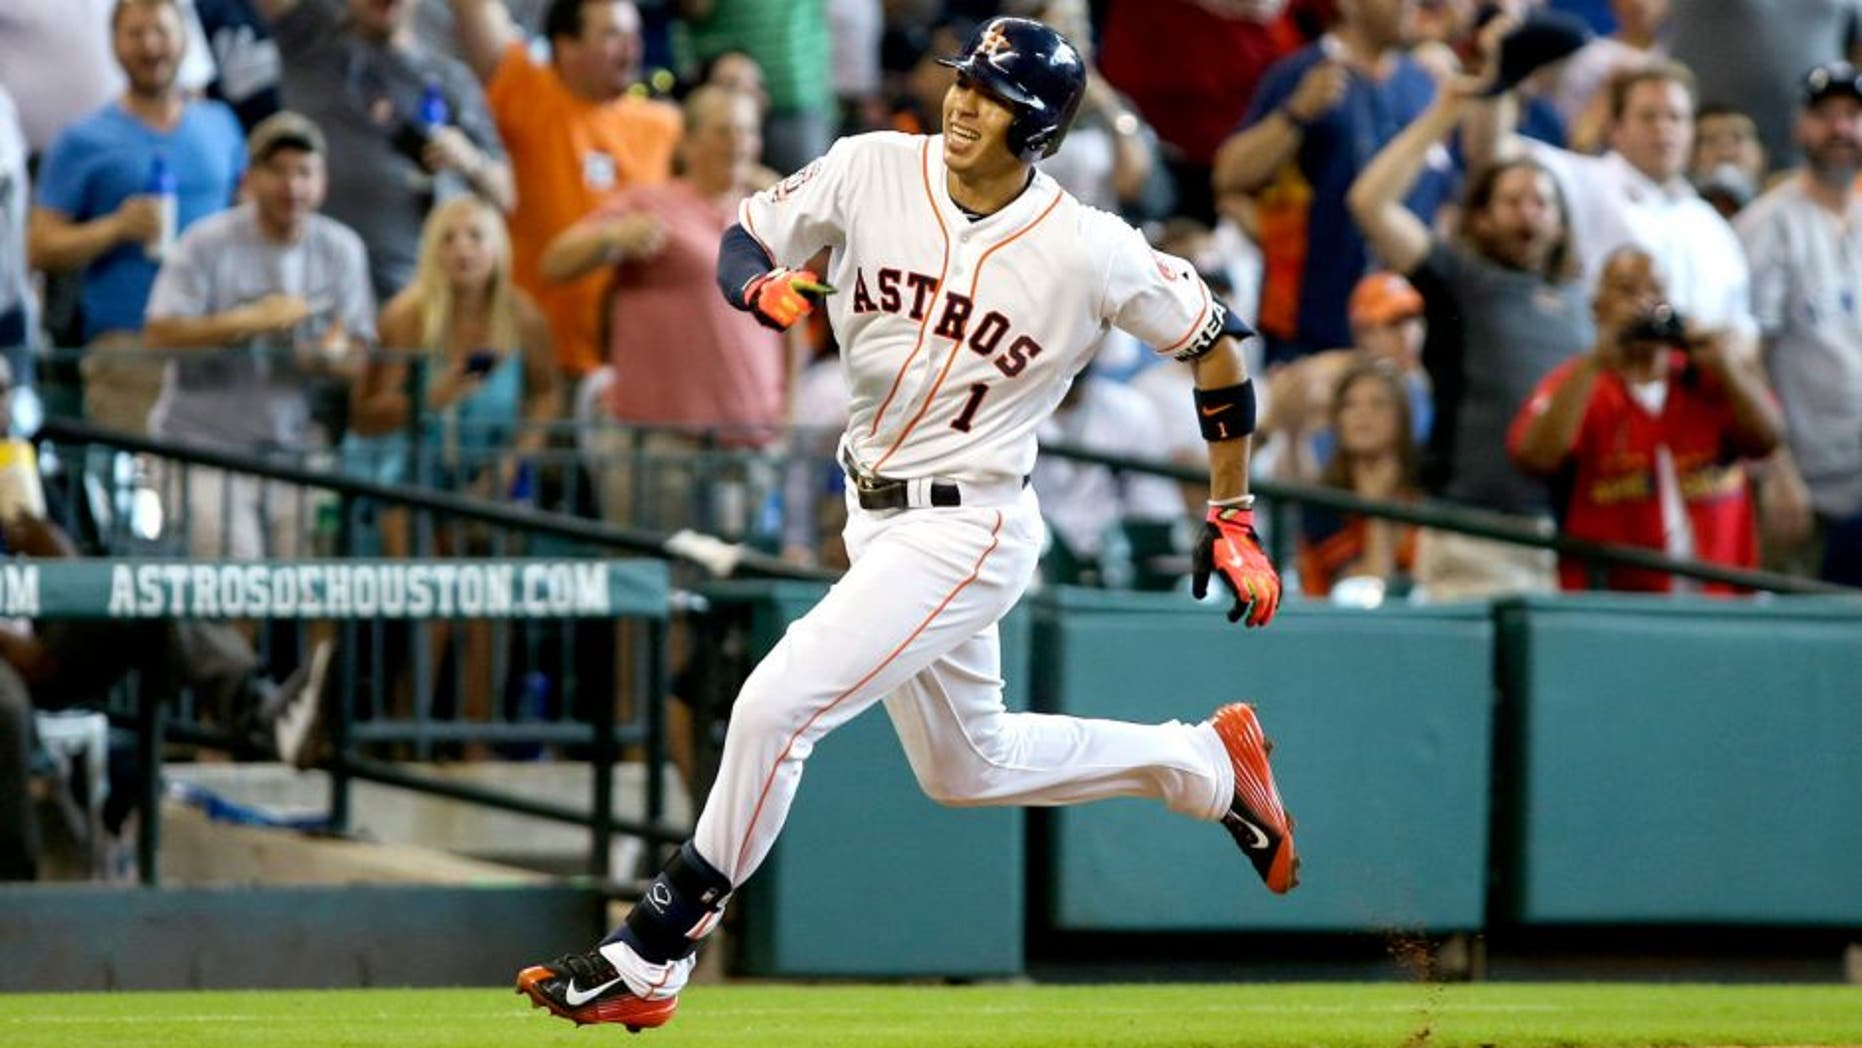 Jun 28, 2015; Houston, TX, USA; Houston Astros shortstop Carlos Correa (1) rounds third base to score a run during the fourth inning against the New York Yankees at Minute Maid Park. Mandatory Credit: Troy Taormina-USA TODAY Sports